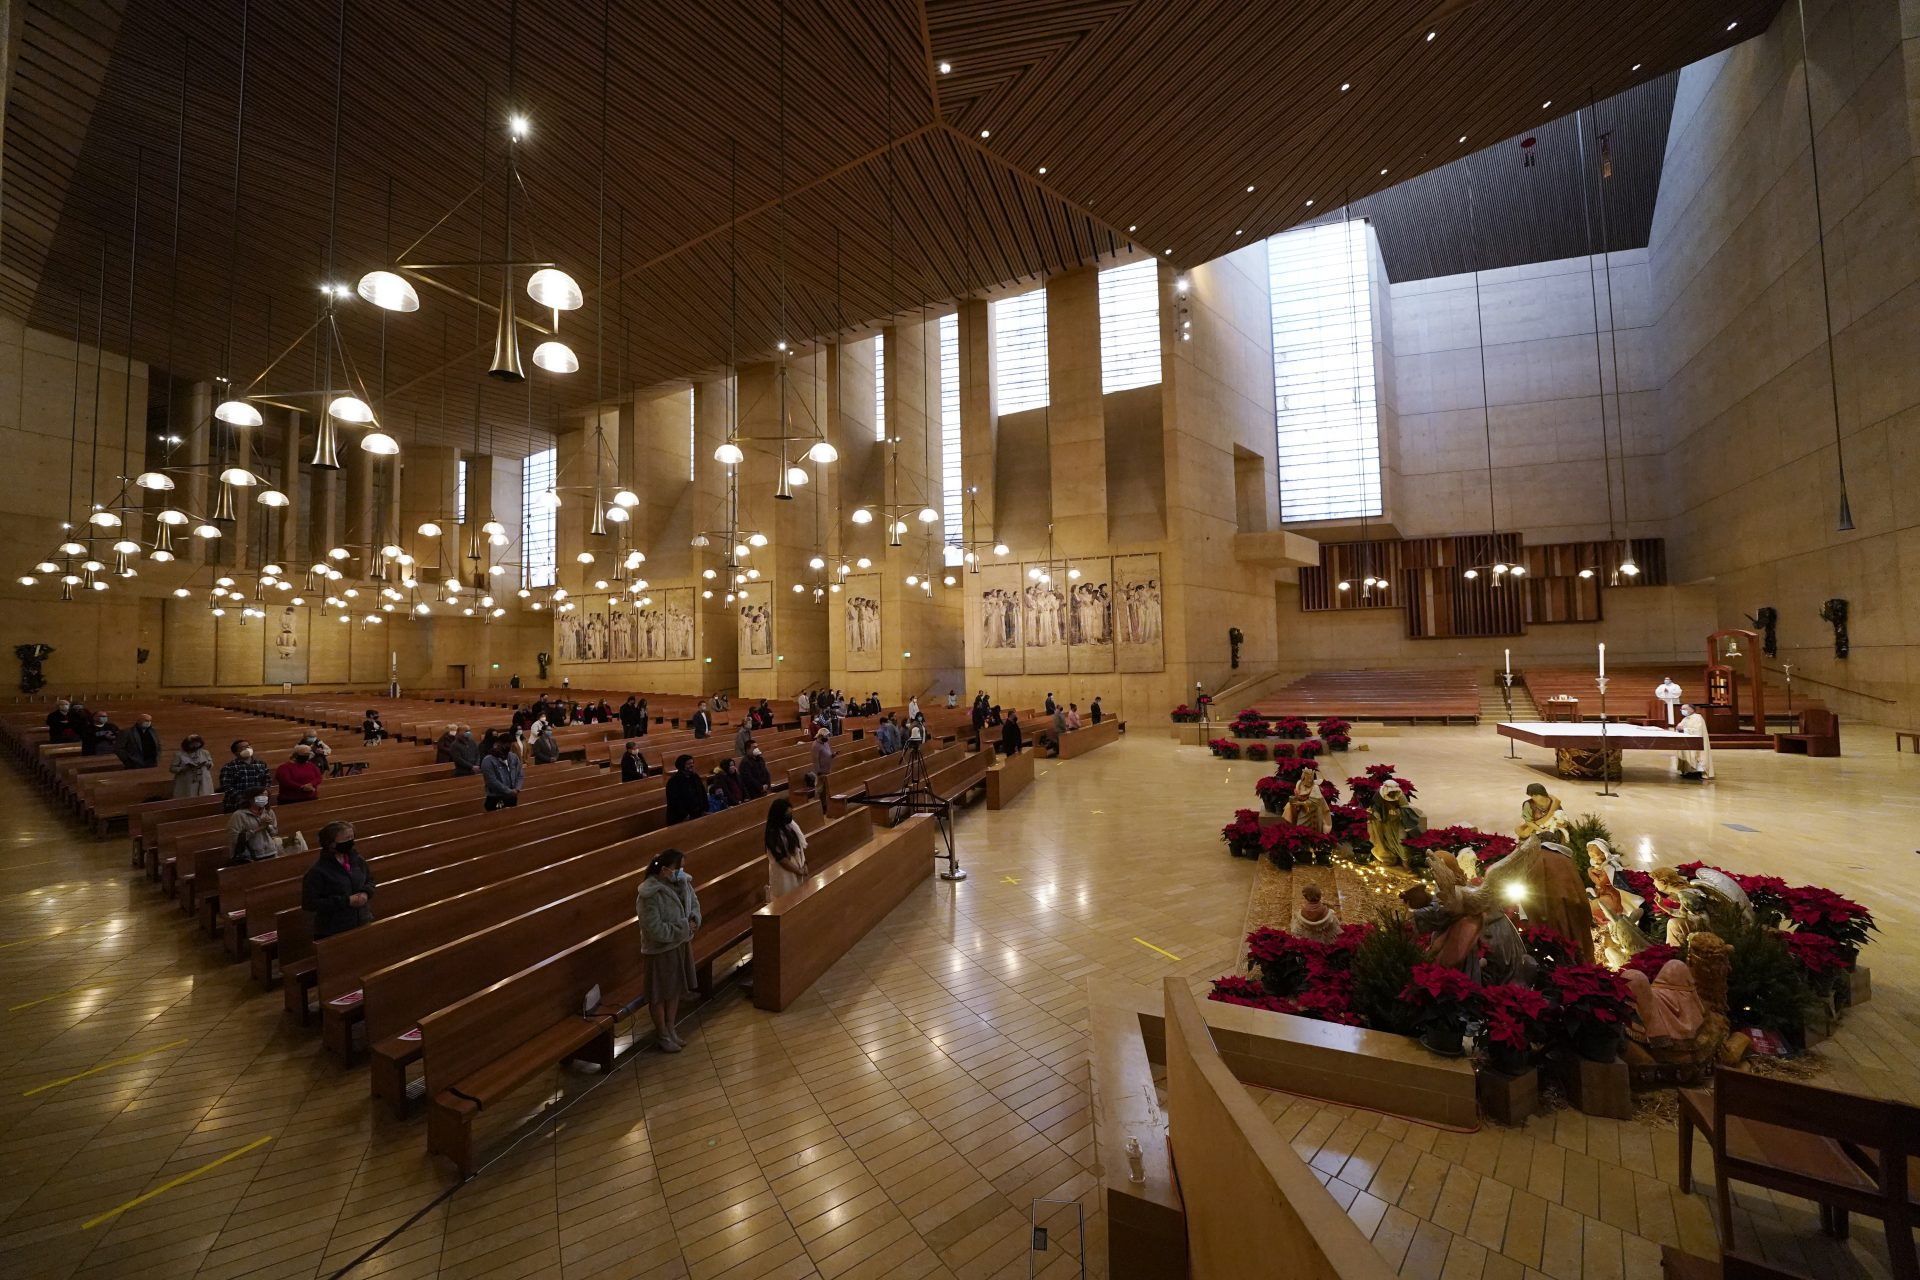 In this Thursday, Dec 24, 2020, file photo, worshippers gather for Christmas Eve Mass at the Cathedral of Our Lady of the Angels in Los Angeles.